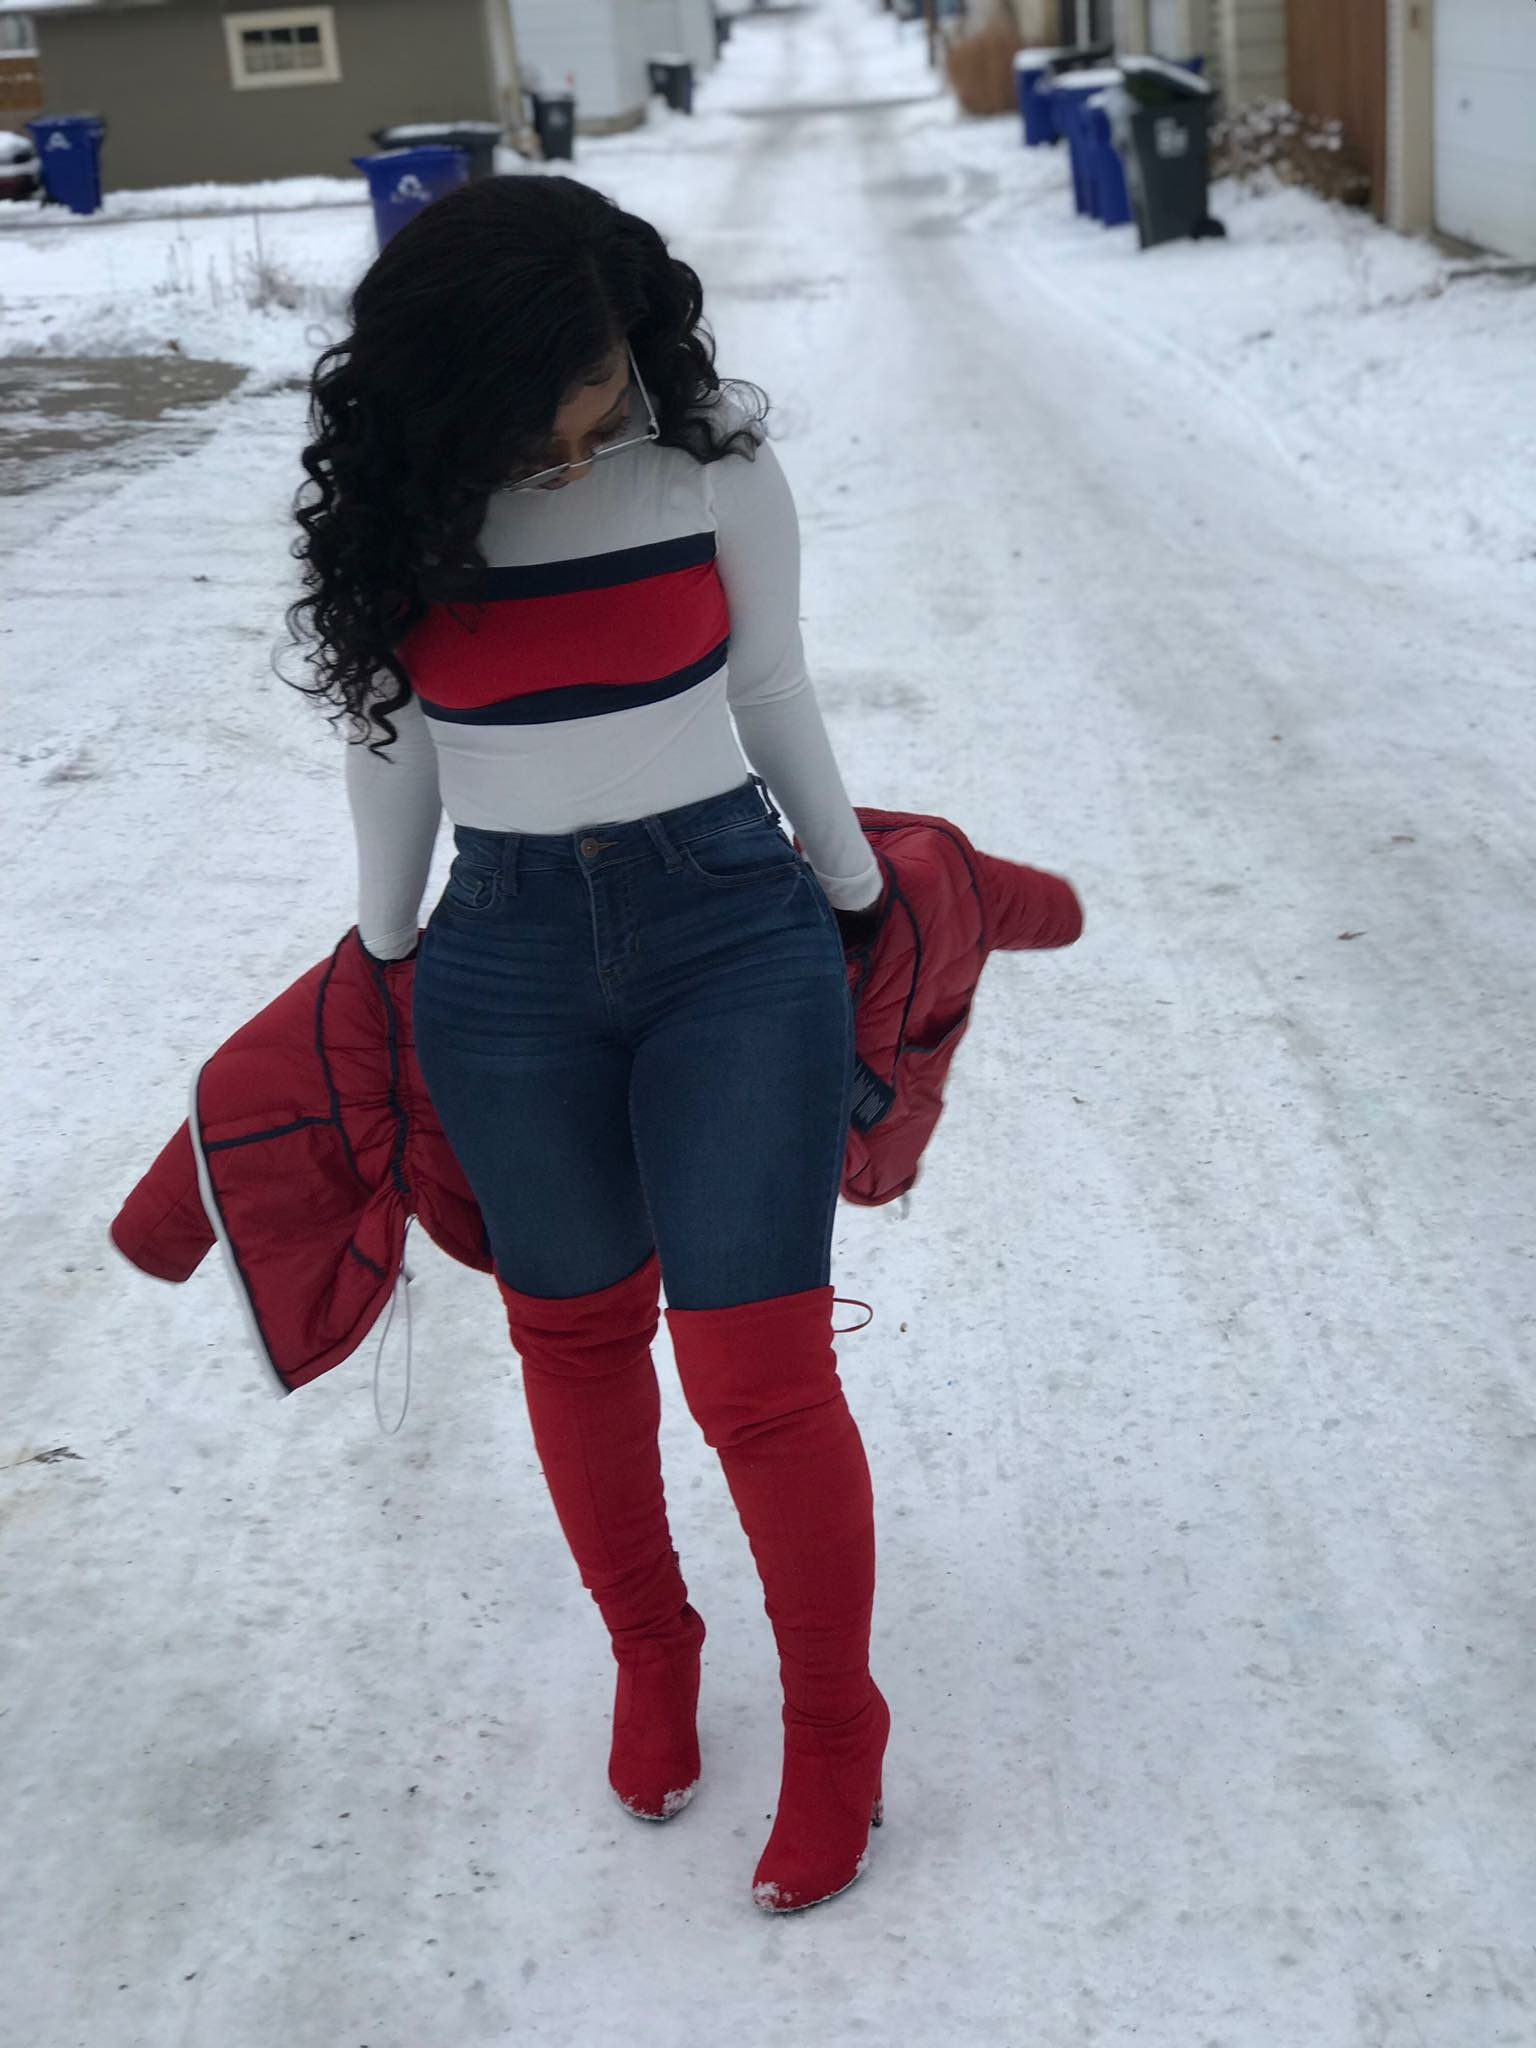 518a8eb10e6 Tommy Hilfiger top with fashionova jeans🔥 stuntin thru the snow😌 follow  keke official✨ for more